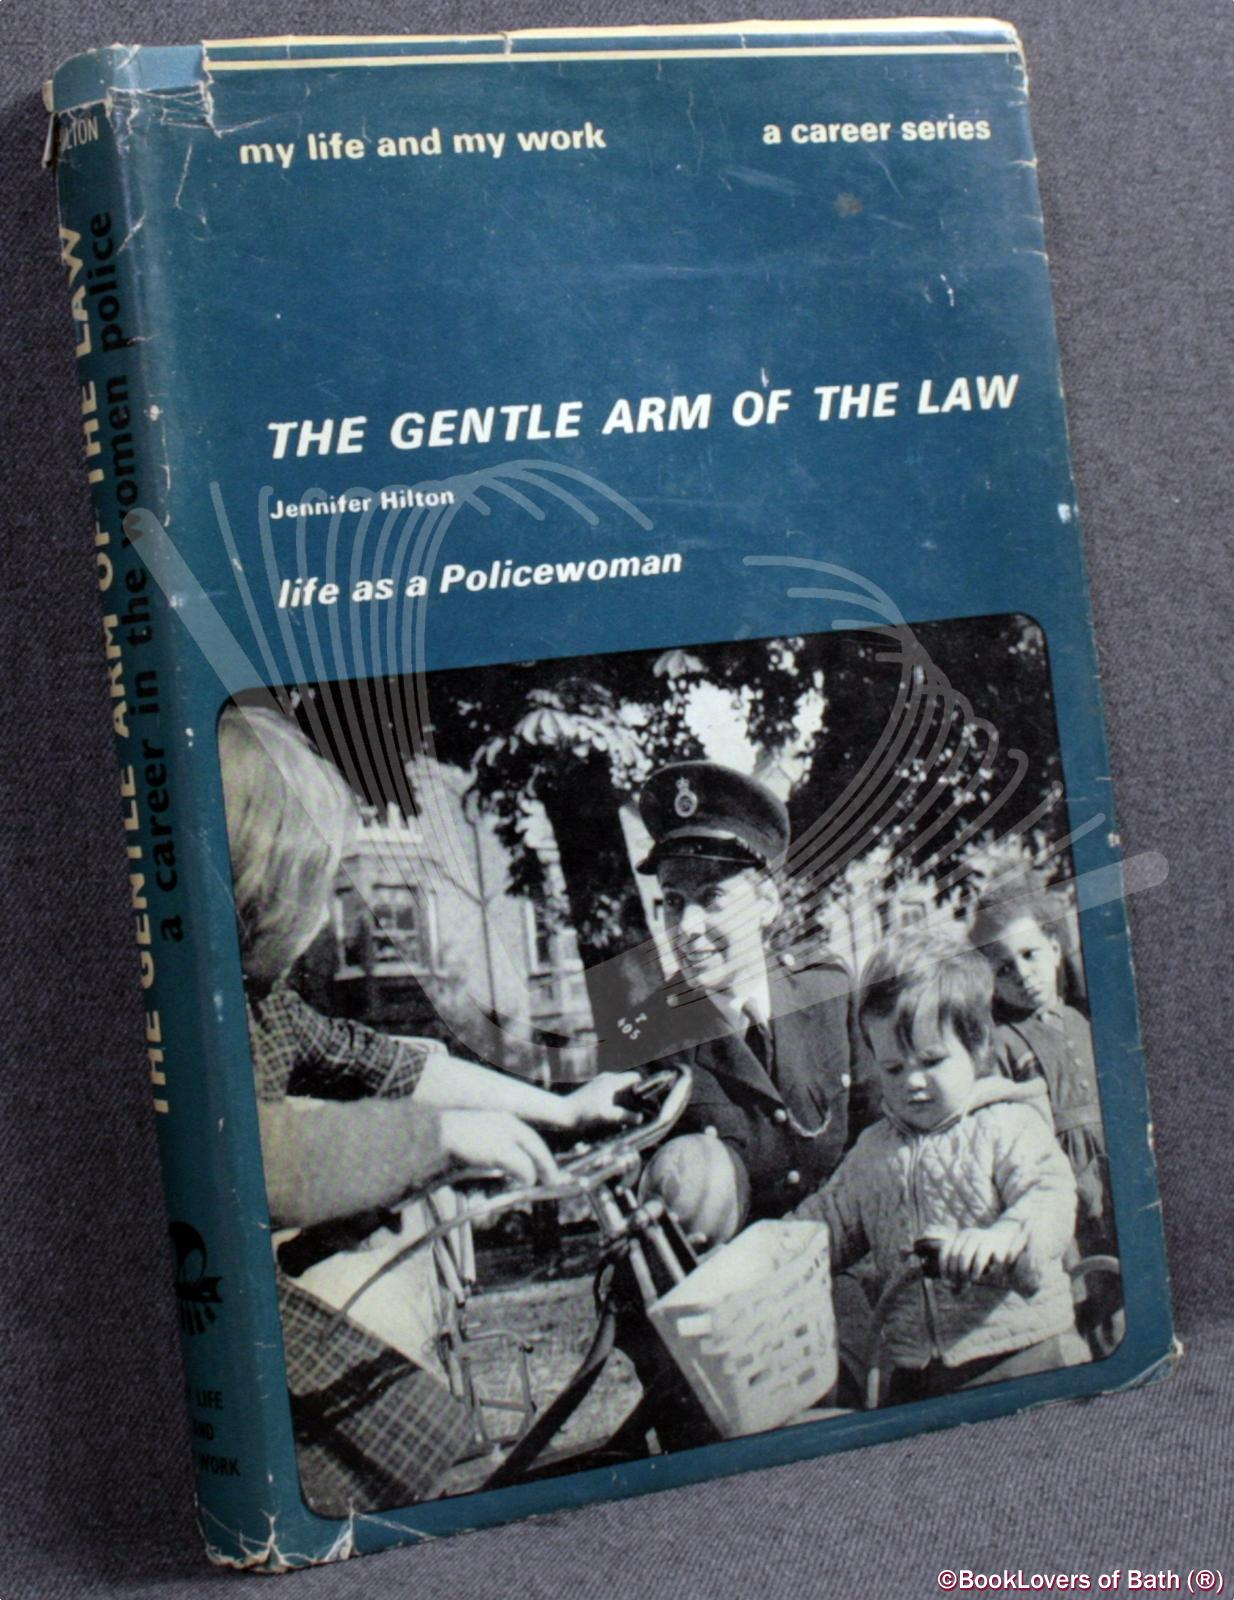 The Gentle Arm of the Law: Life as a Policewoman - Jennifer Hilton